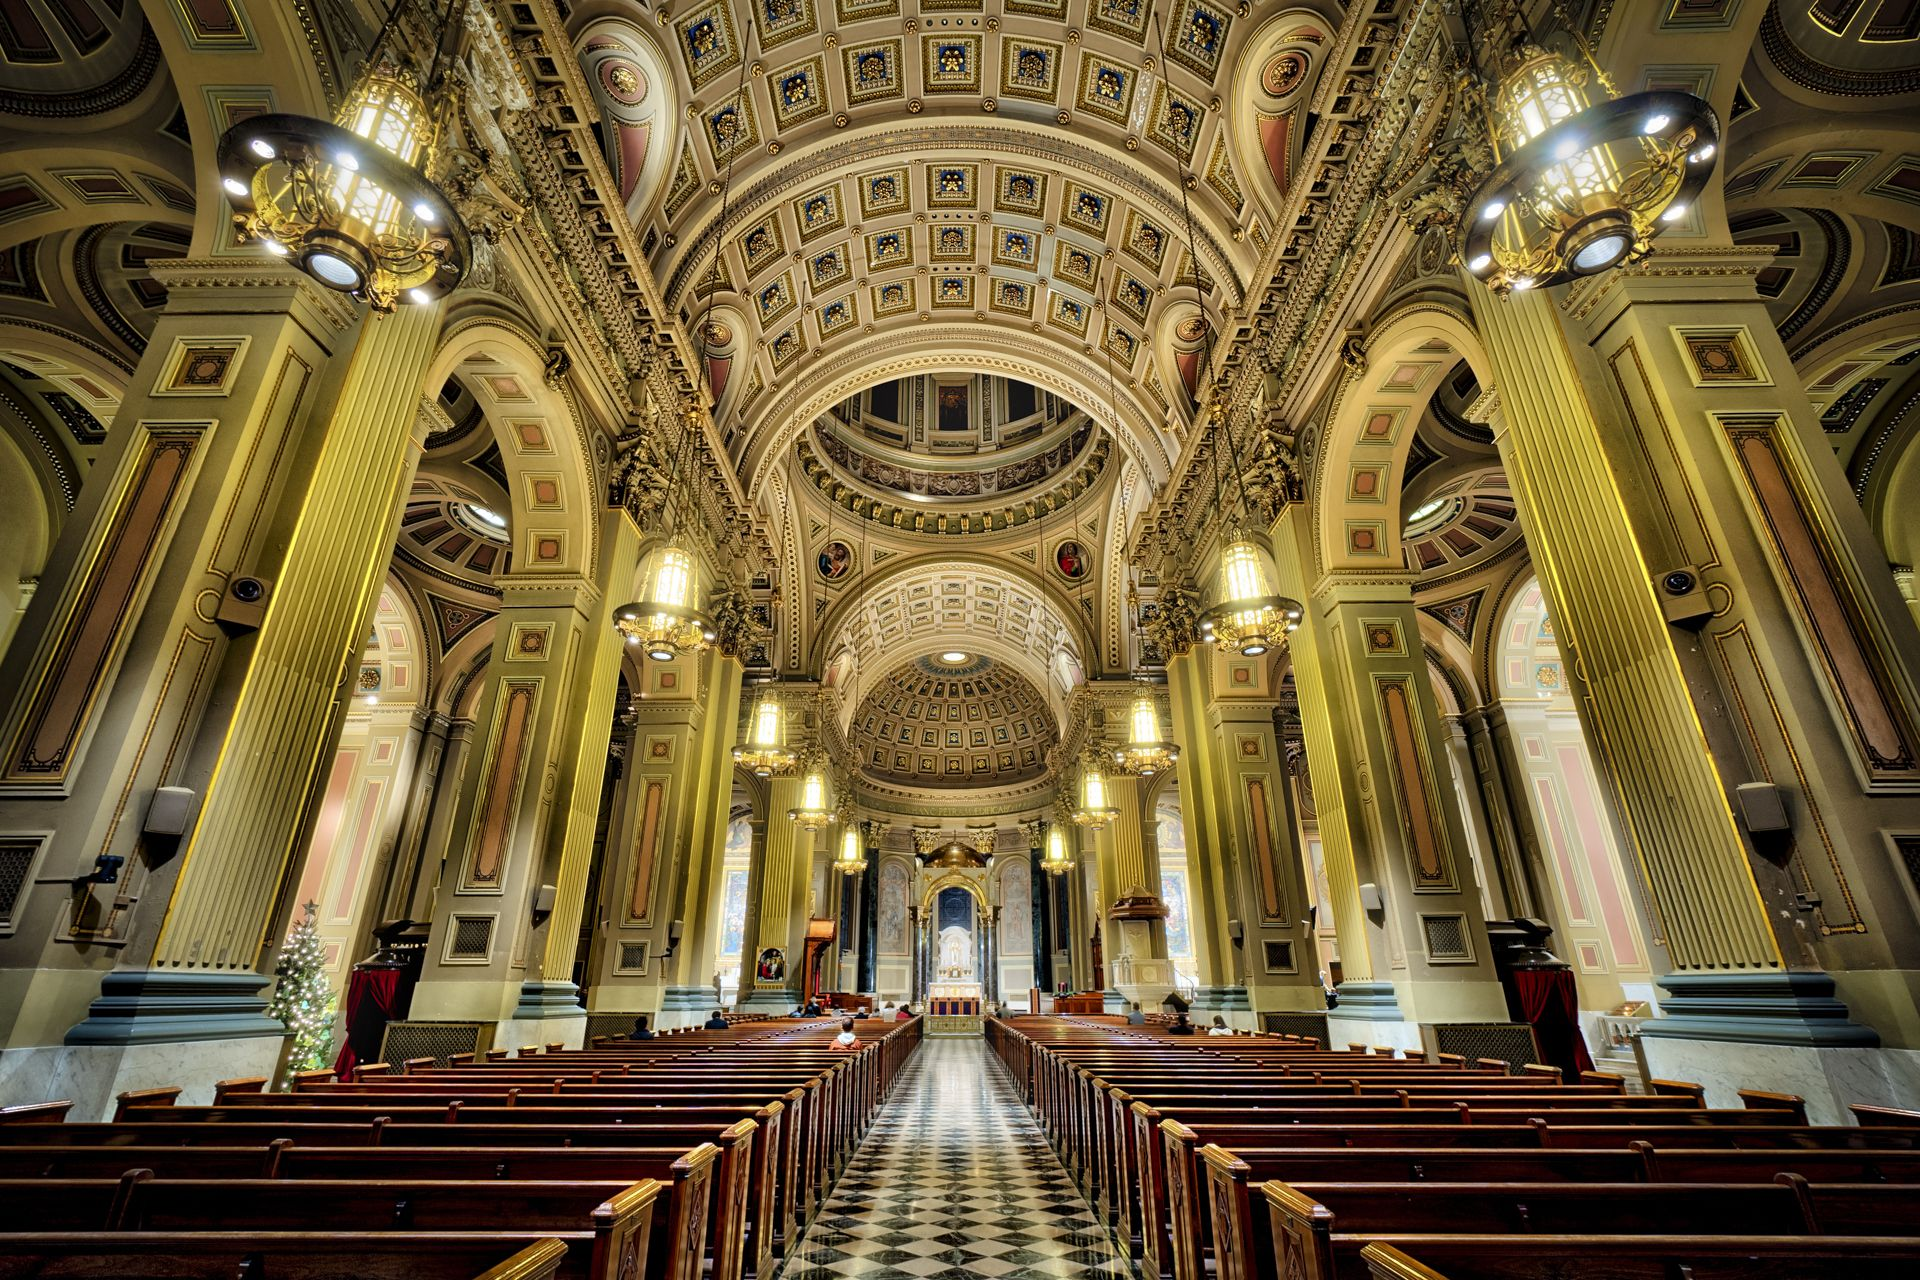 Inside the Cathedral Basilica of Saints Peter and Paul on